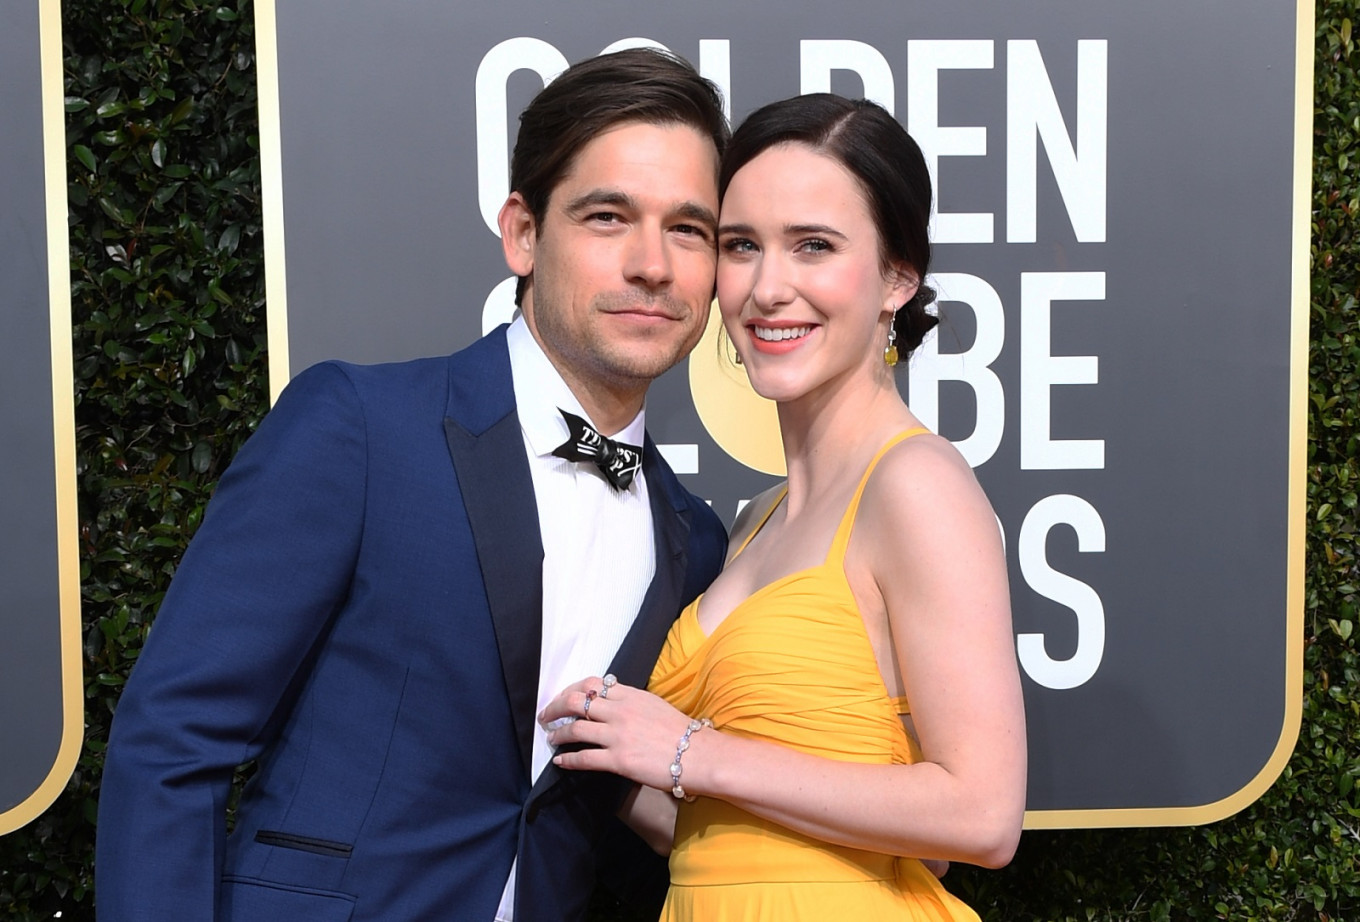 Best Performance by an Actress in a Television Series – Musical or Comedy for 'The Marvelous Mrs. Maisel' nominee Rachel Brosnahan (R) and US actor Jason Ralph arrive for the 76th annual Golden Globe Awards on Jan. 6, 2019, at the Beverly Hilton hotel in Beverly Hills, California.